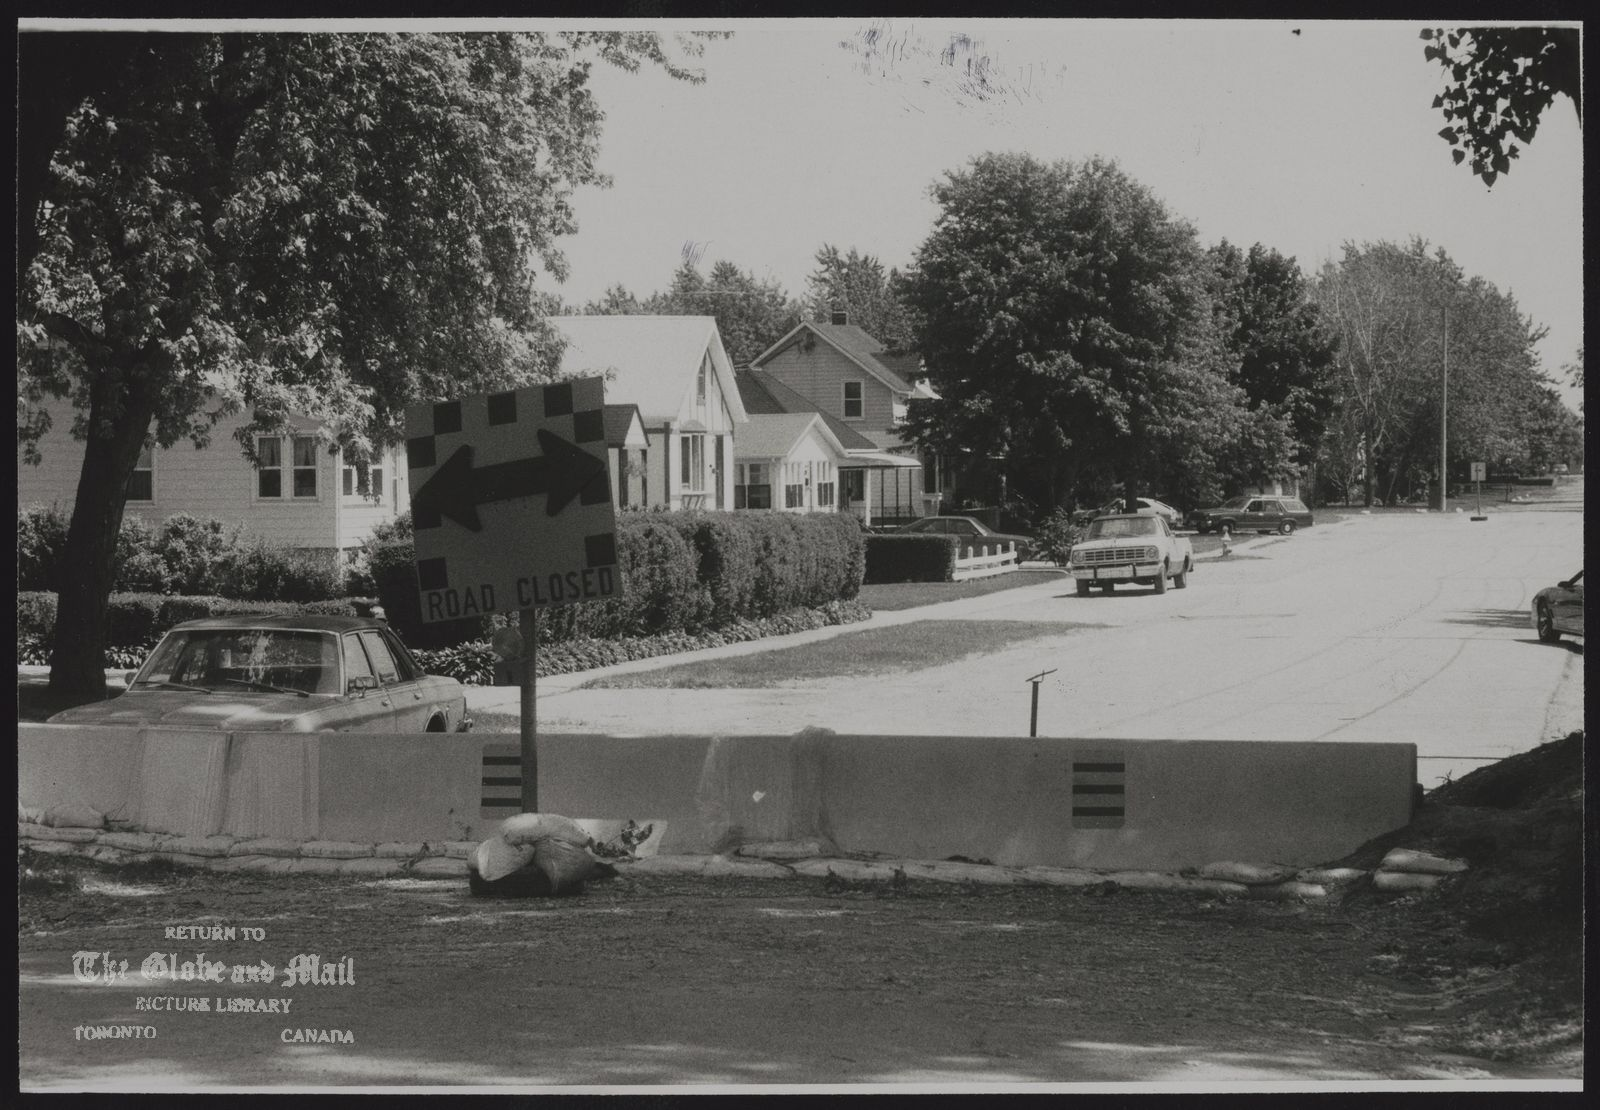 The notes transcribed from the back of this photograph are as follows: Barriers and sandbags set up as secondary flood wall around a Windsor subdivision.